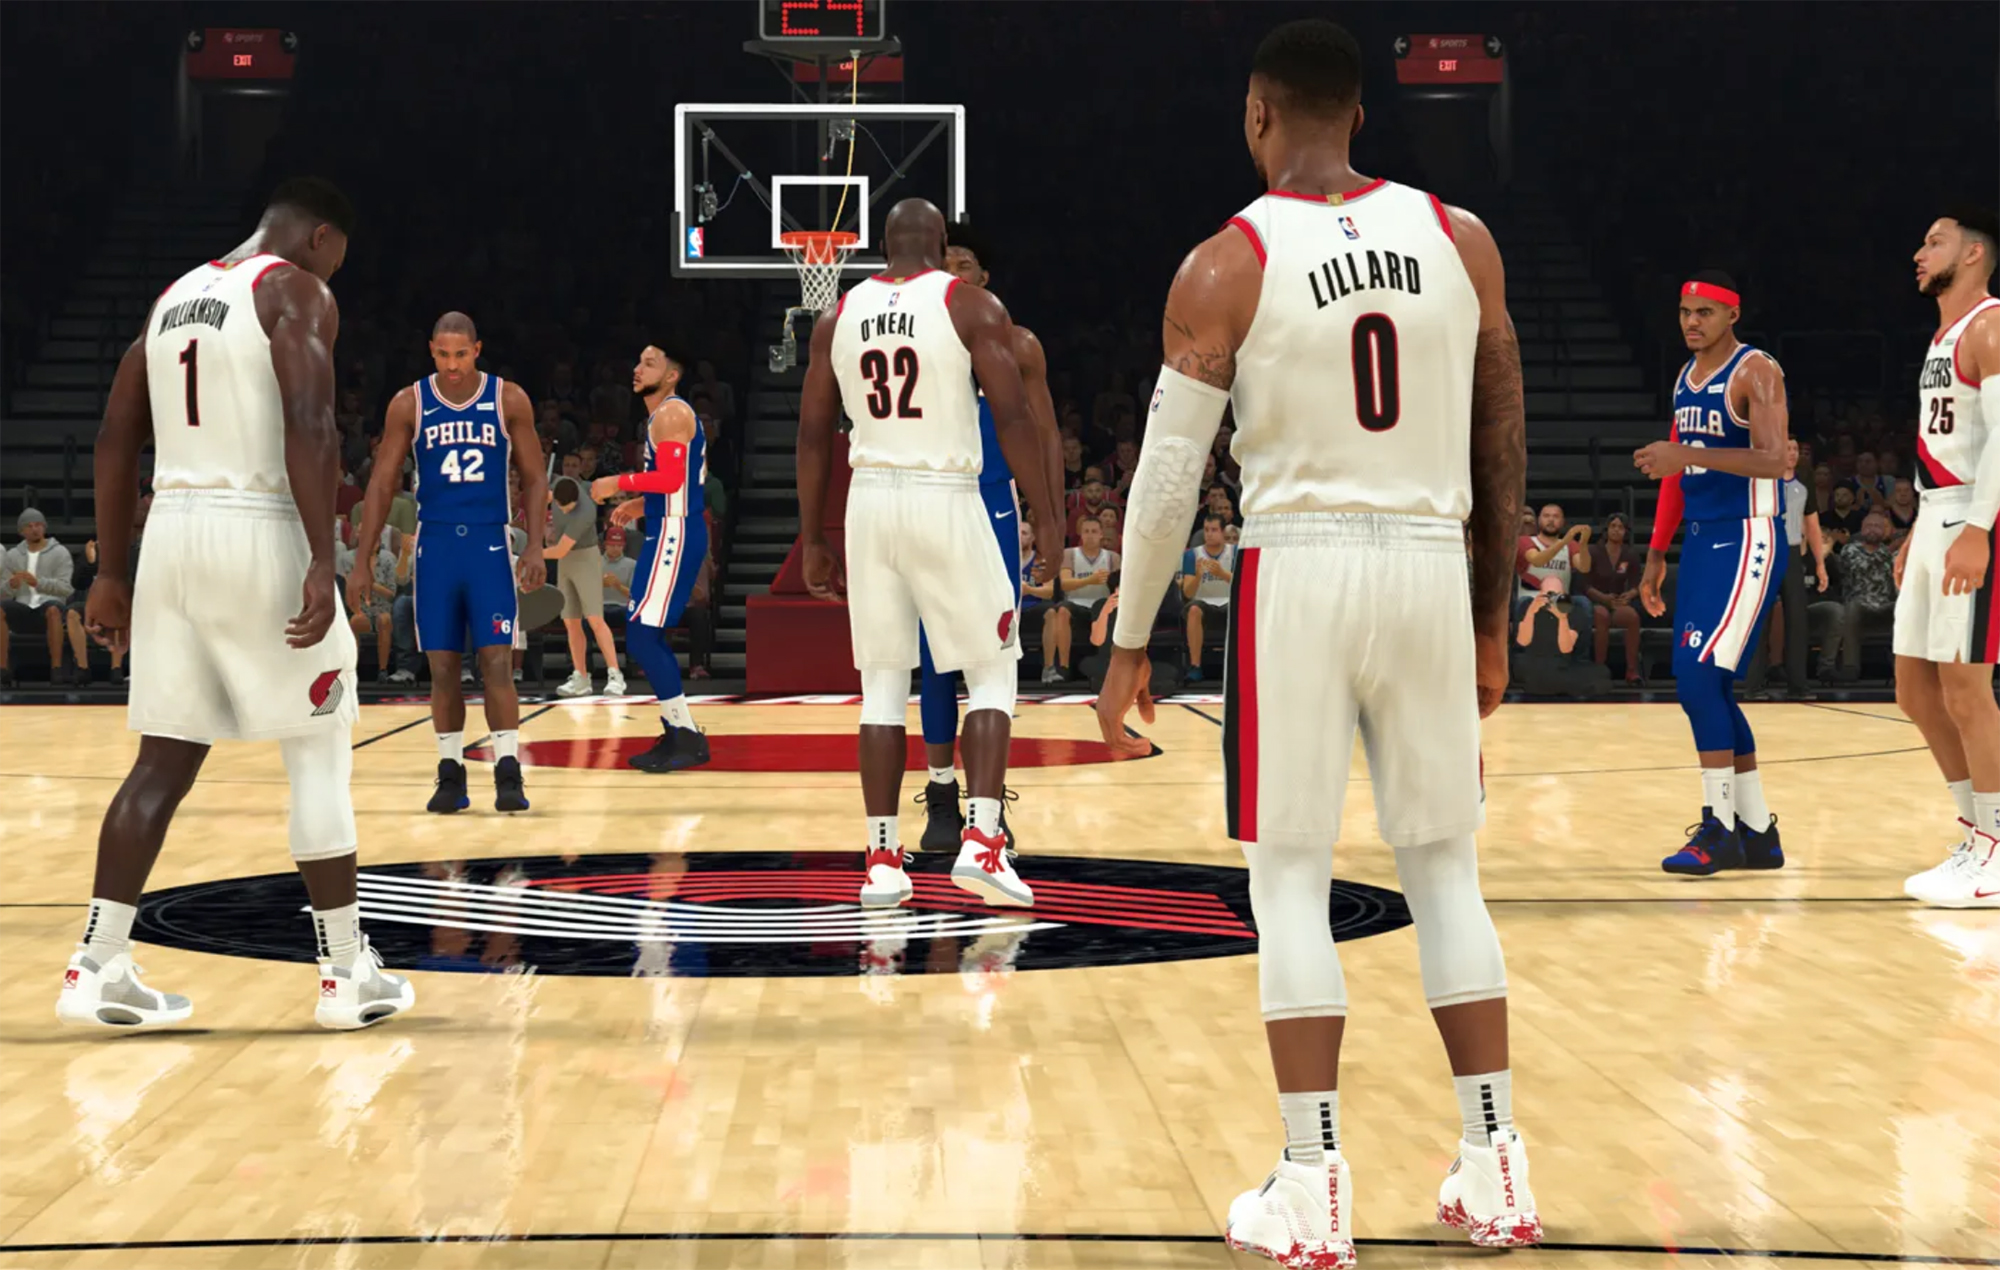 Nba 2k21 Will Be A Launch Title For Both Ps5 And Xbox Series X